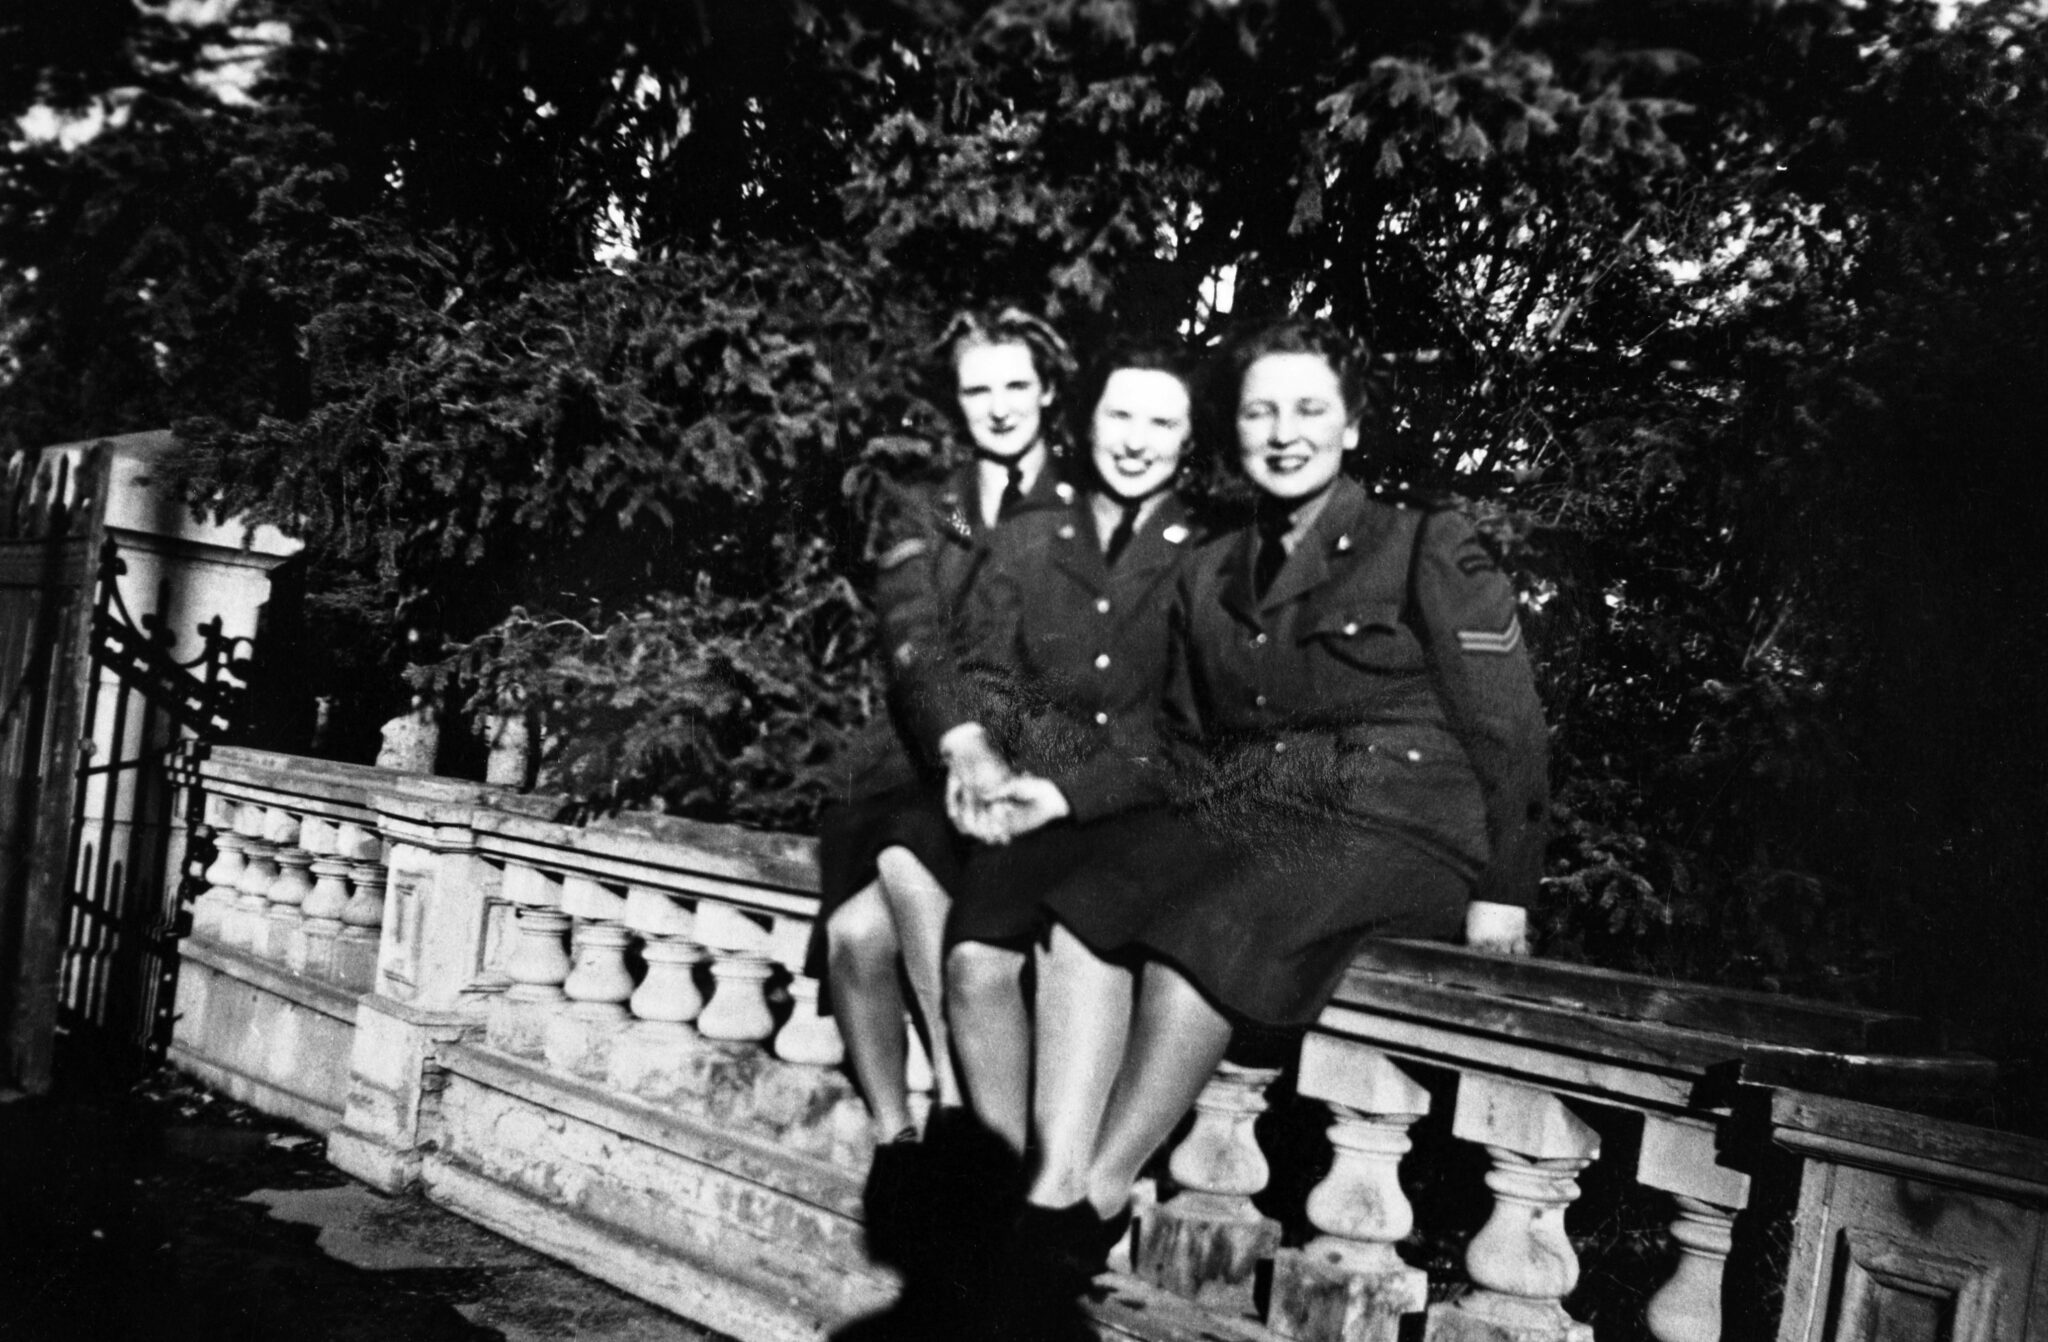 Black and white image circa 1944-46 of three women in military uniform sitting on balustrade in front of group of trees.